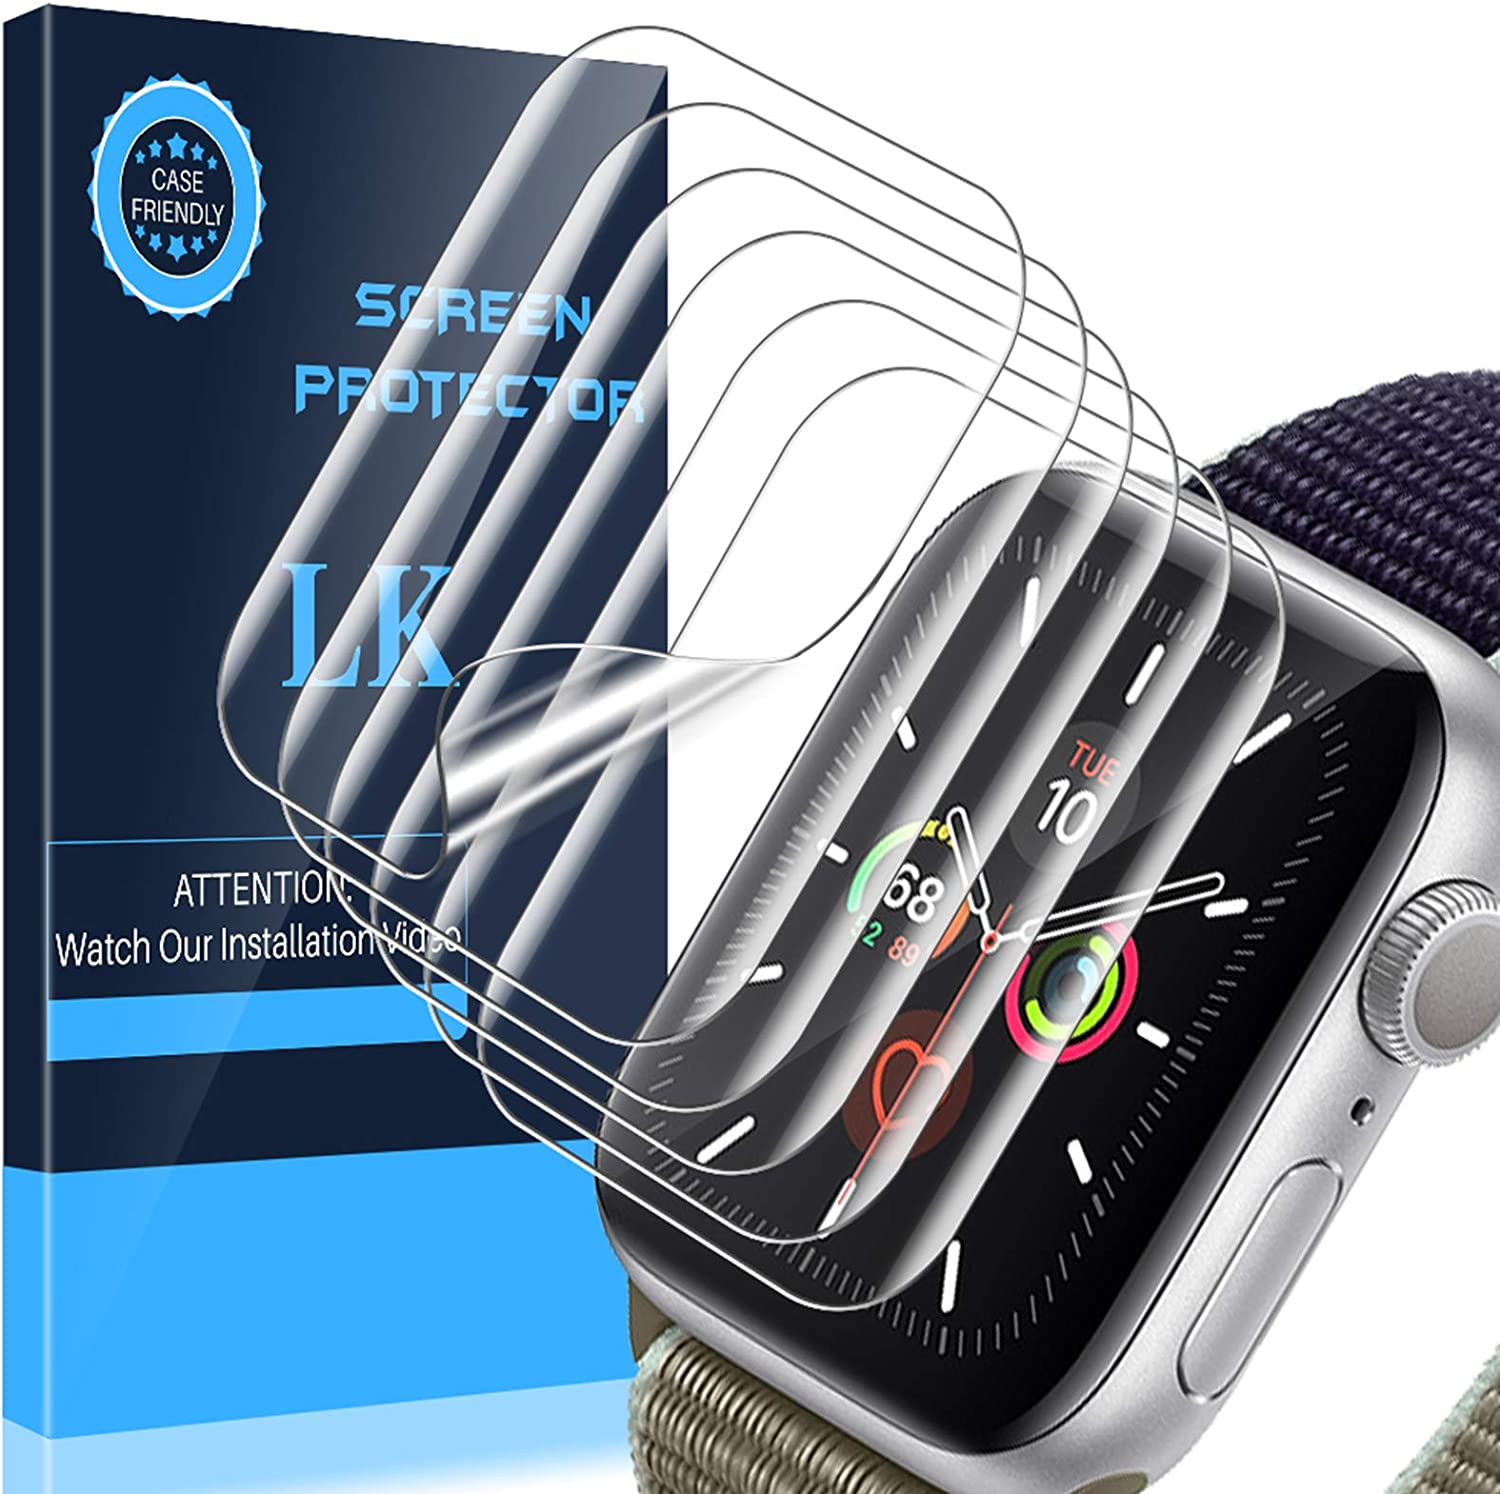 LK [6 Pack] Screen Protector for Apple Watch Series 6/5 / 4 44mm, Max Coverage, Compatible with iWatch 44mm, Ultra-Thin Clear TPU Film(apjp020)